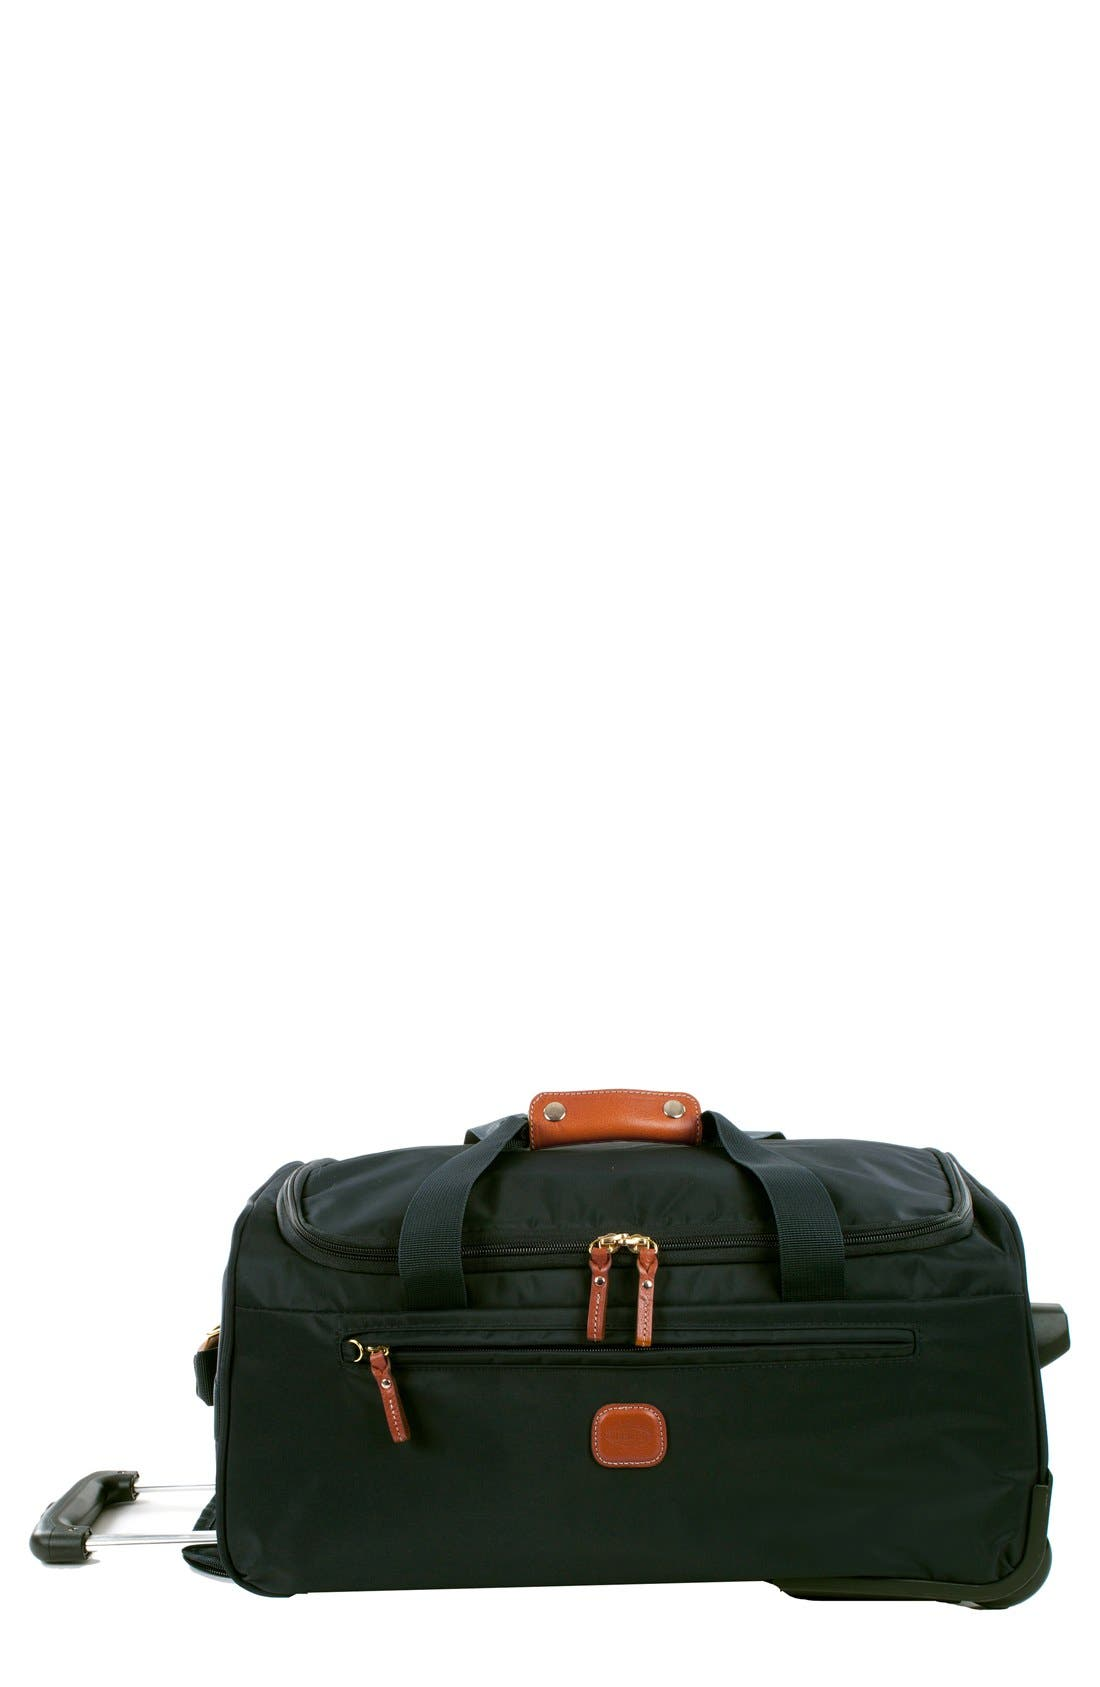 Bric's 'X-Bag' Carry-On Rolling Duffel Bag (21 Inch)